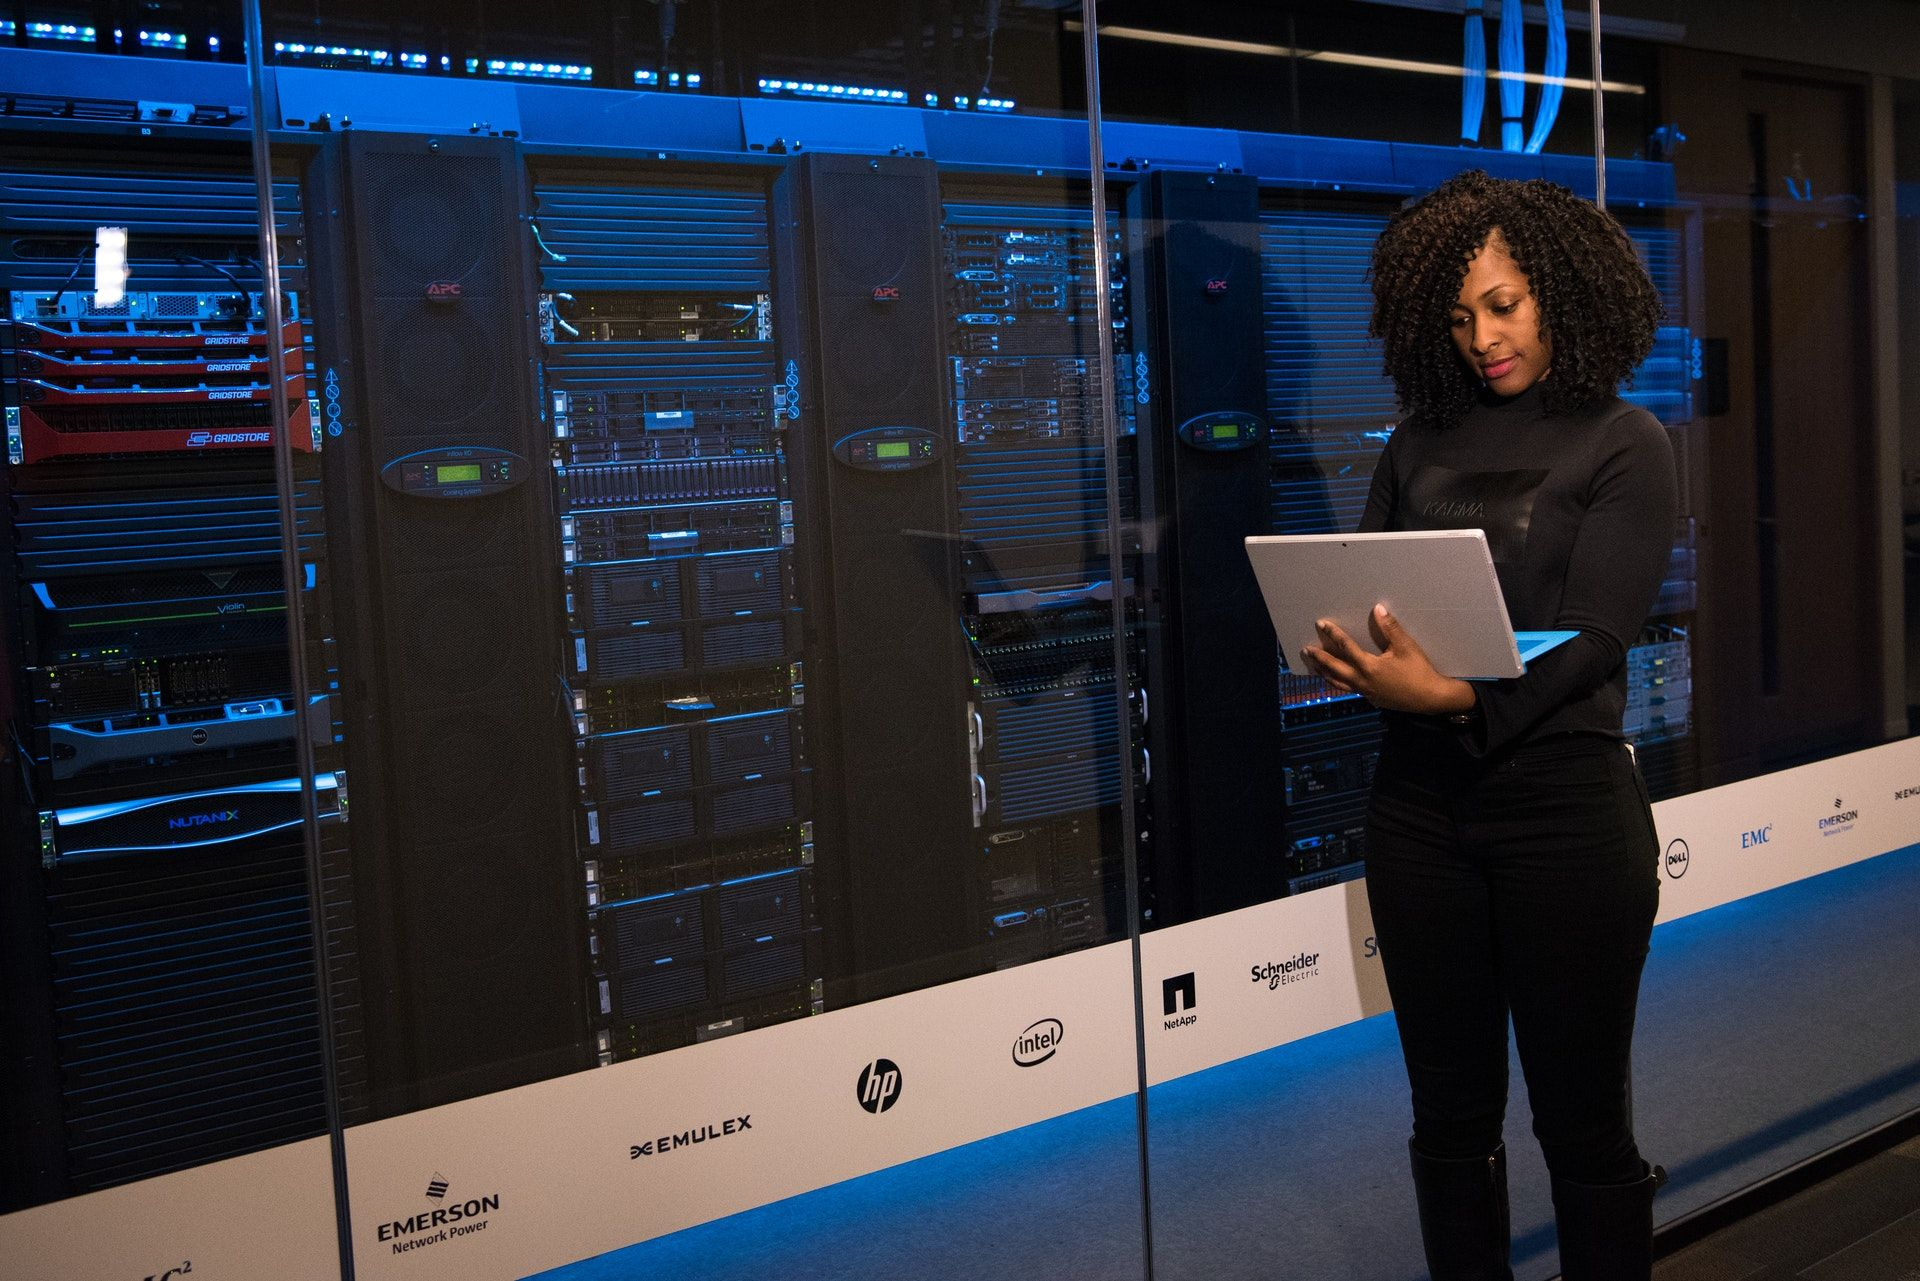 /these-shifts-will-shape-the-future-of-data-centers-cnt33s6 feature image